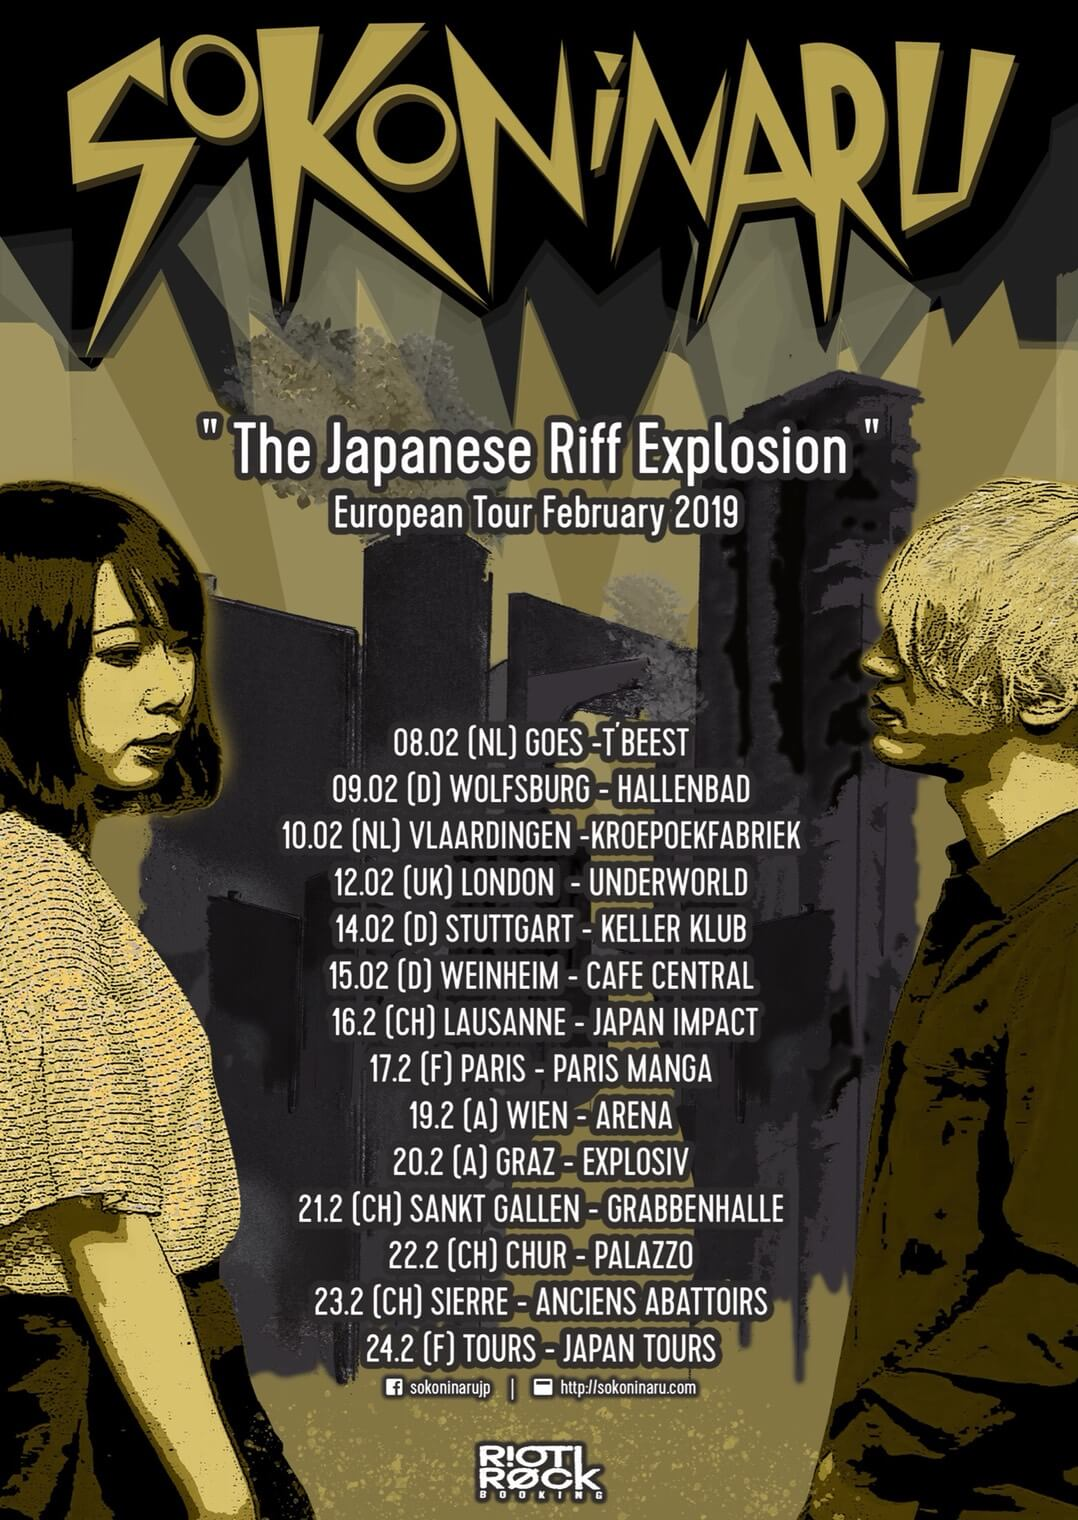 sokoninaru announce European Tour 2019: The Japanese Riff Explosion